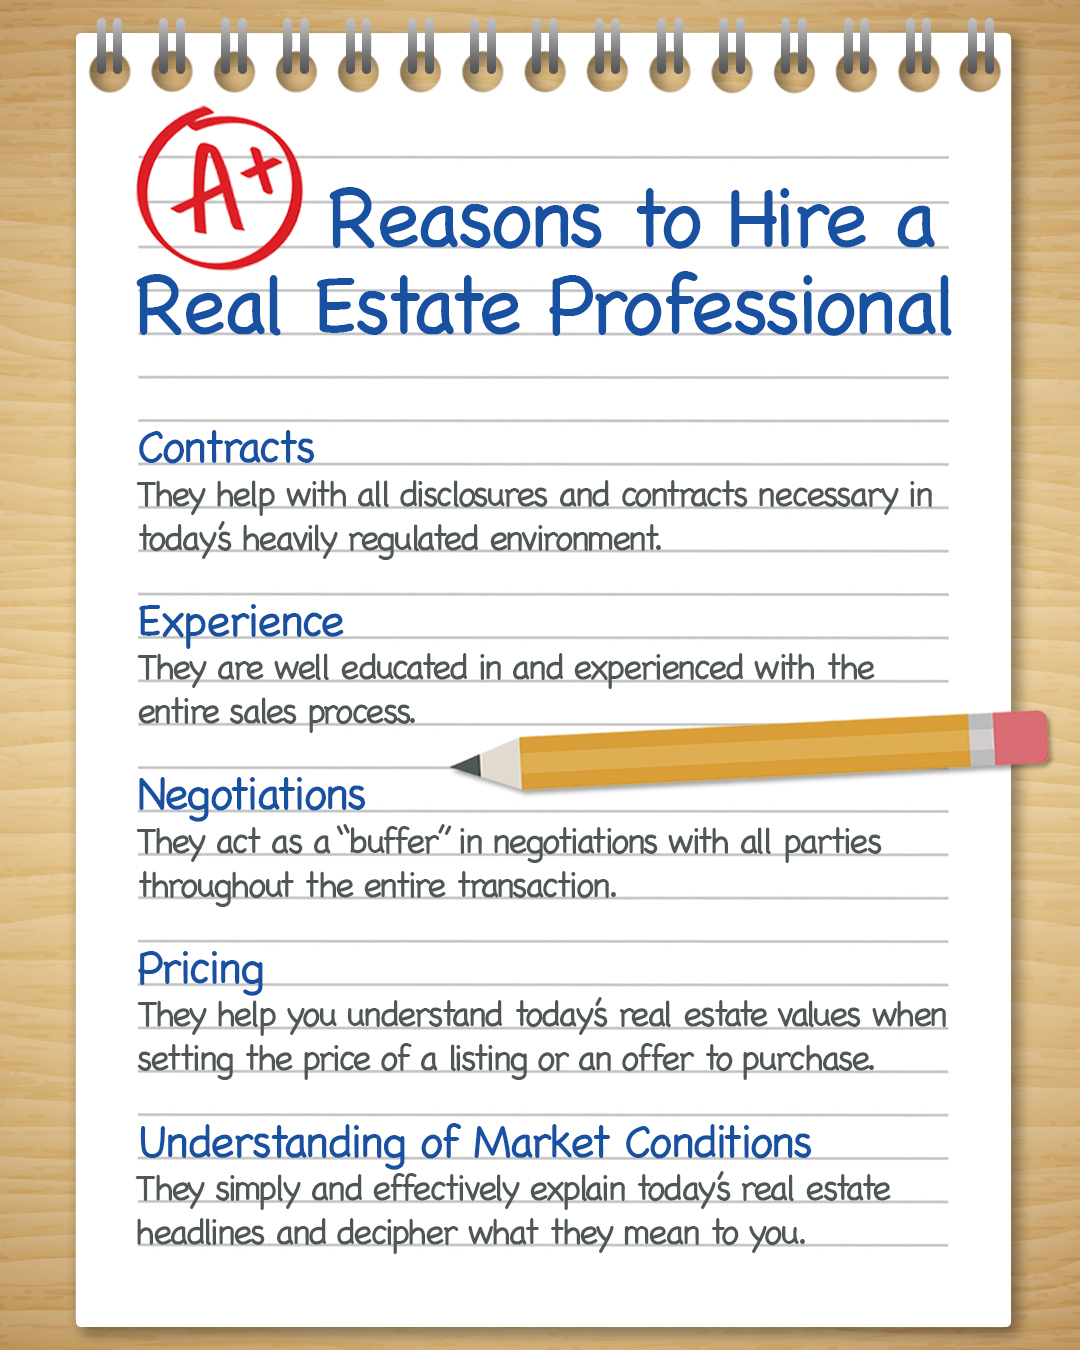 A+ Reasons to Hire a Real Estate Pro [INFOGRAPHIC]   Simplifying The Market